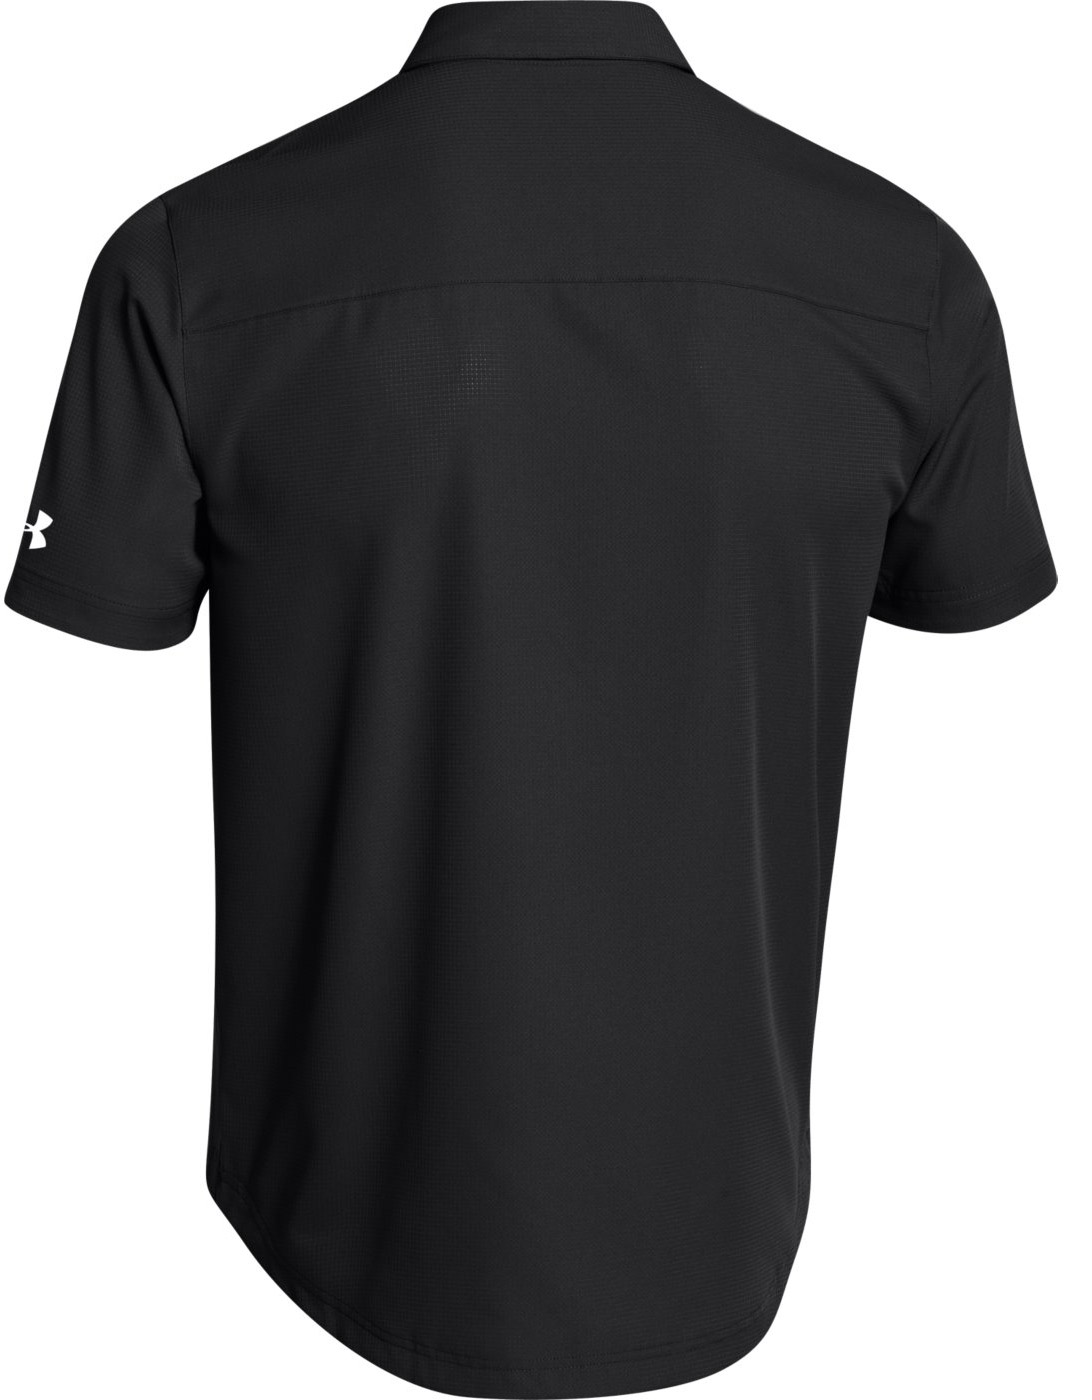 Under armour ultimate men 39 s button down short sleeve shirt for Under armor business shirts